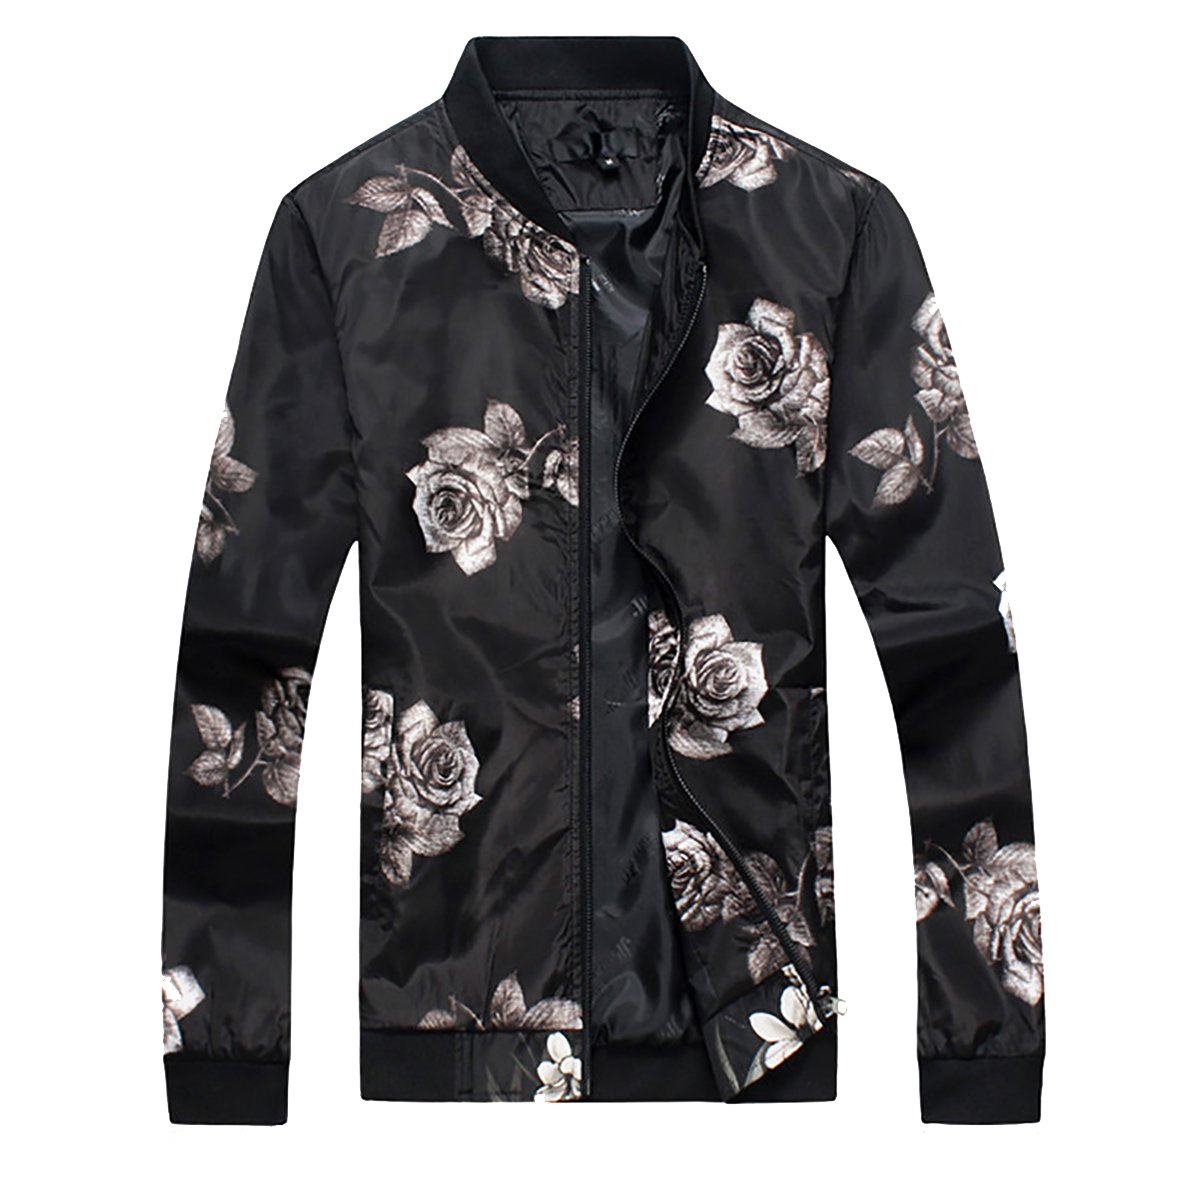 Cloudstyle Mens Slim Fit Jacket Lightweight Sportswear Casual Long Sleeve Bomber Jacket,Black,Small by Cloudstyle